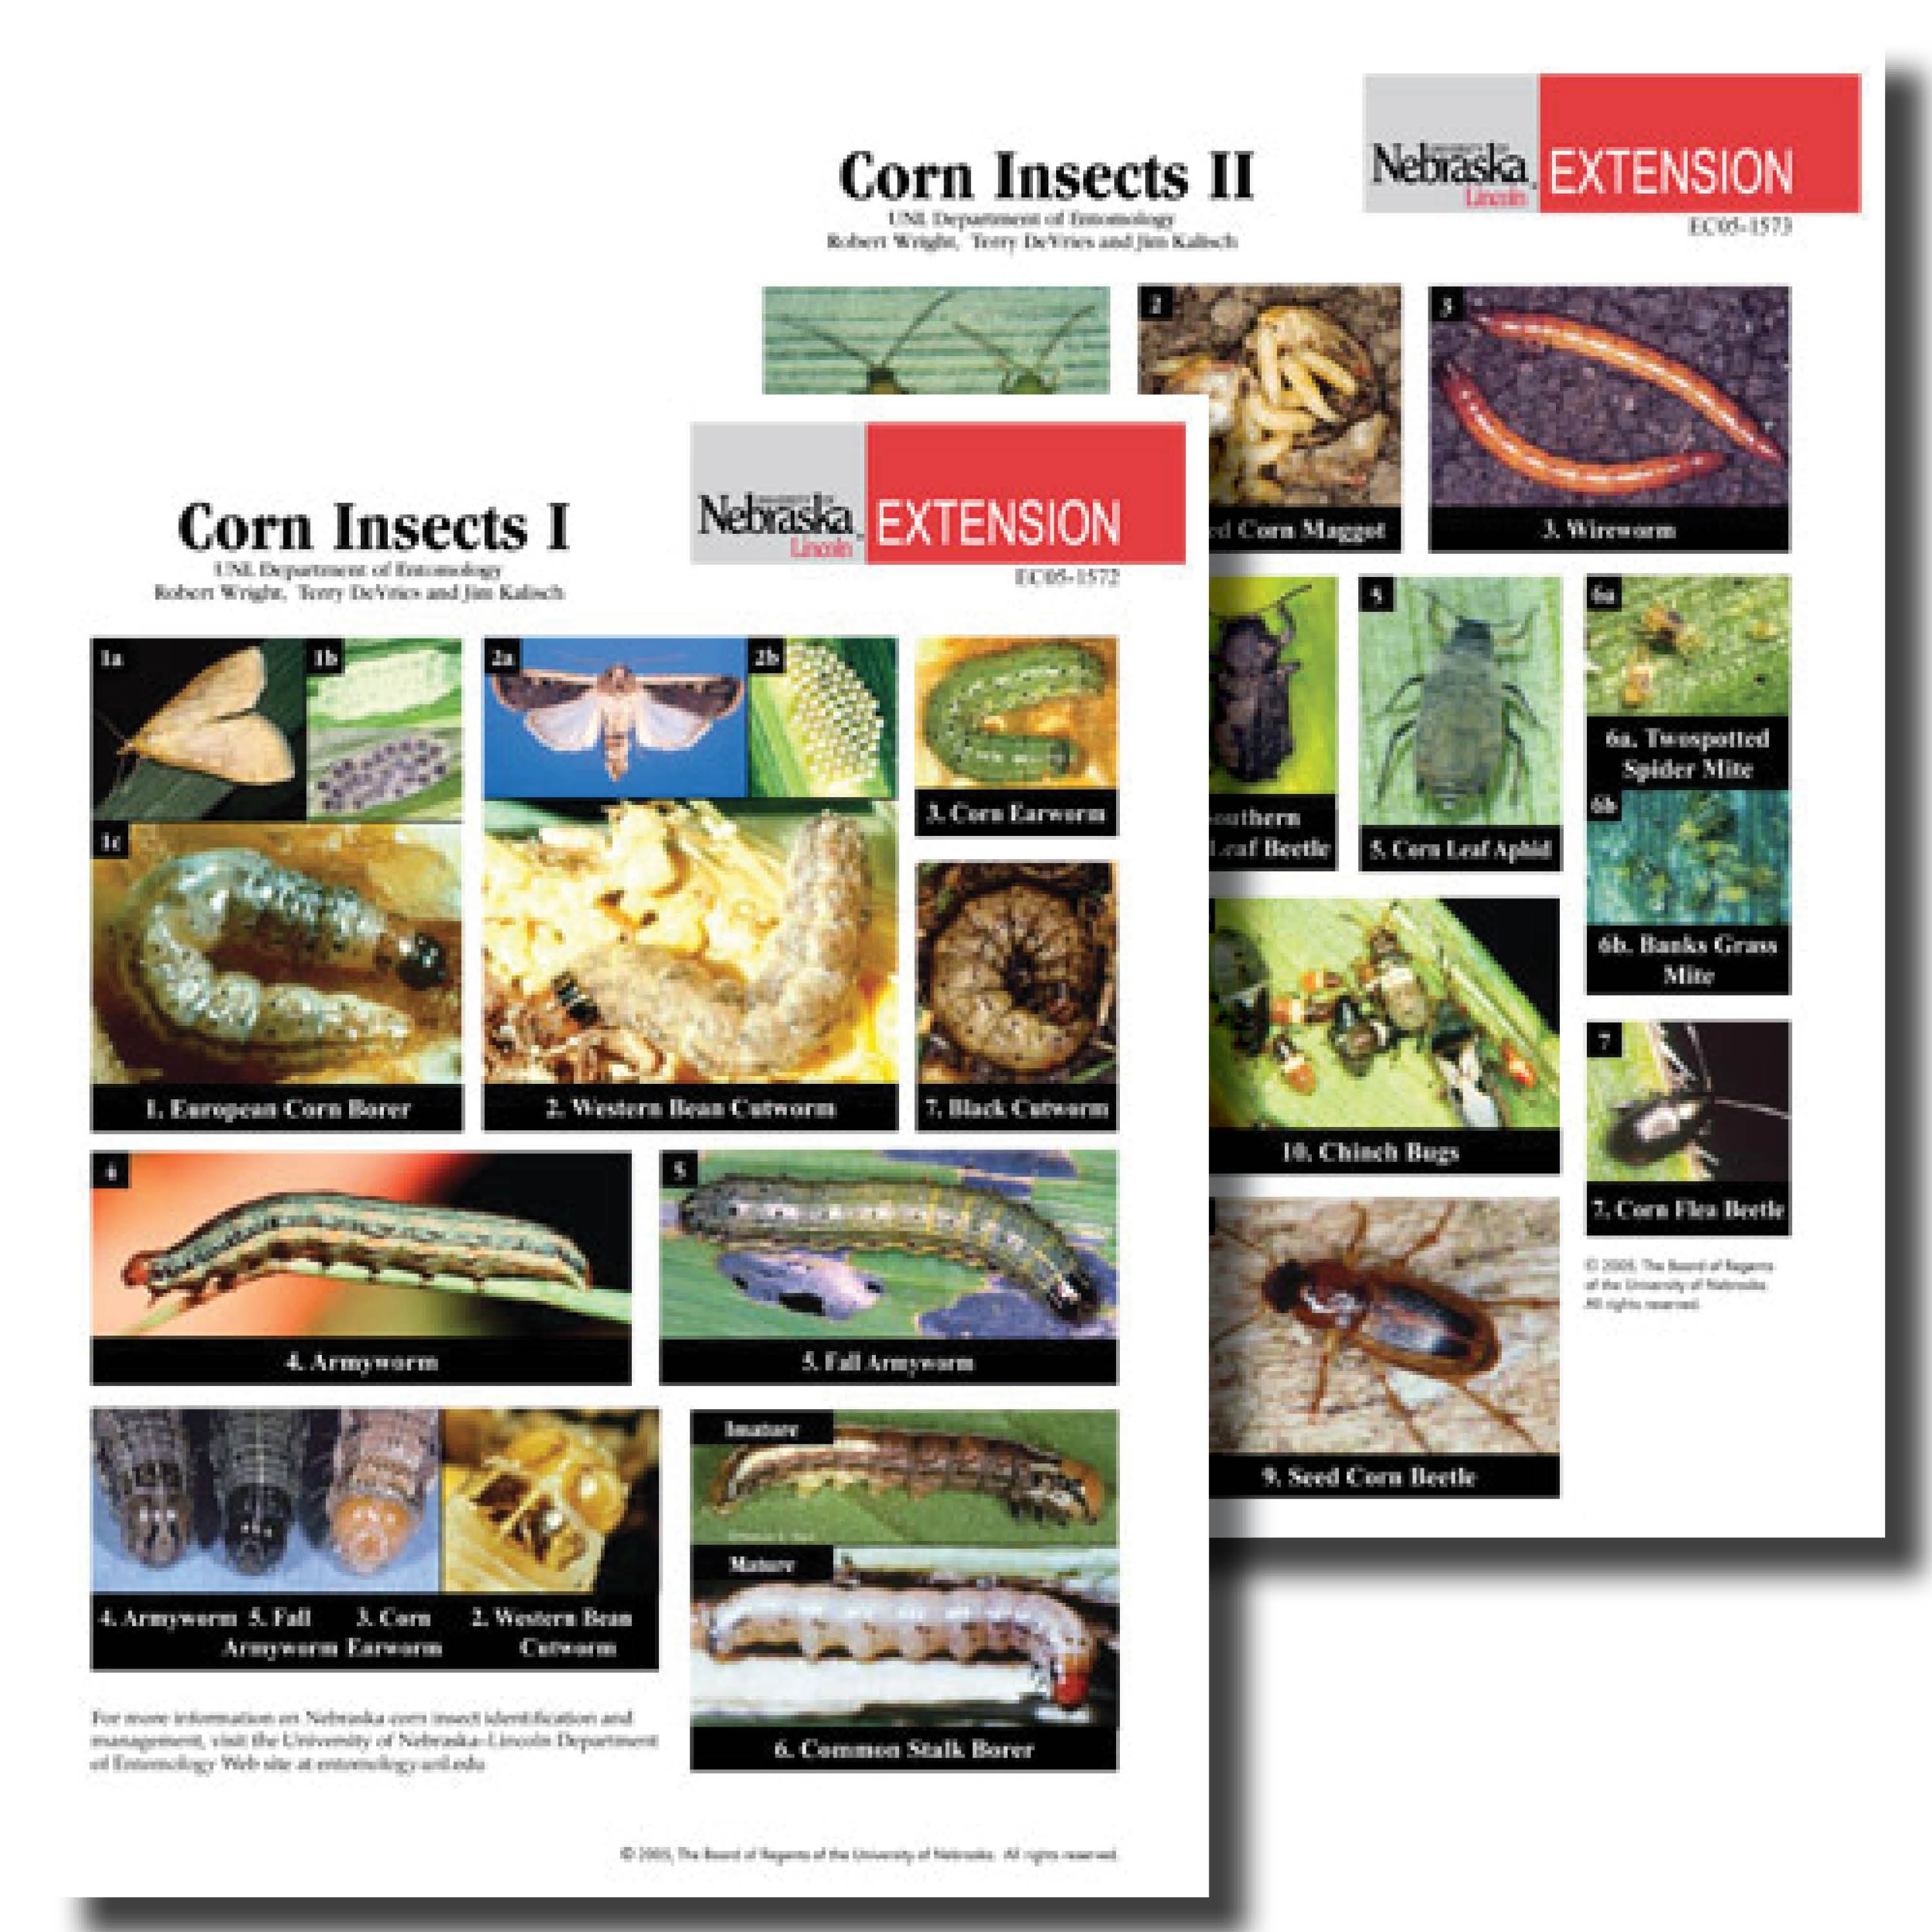 Corn Insects Photo Identification Guides